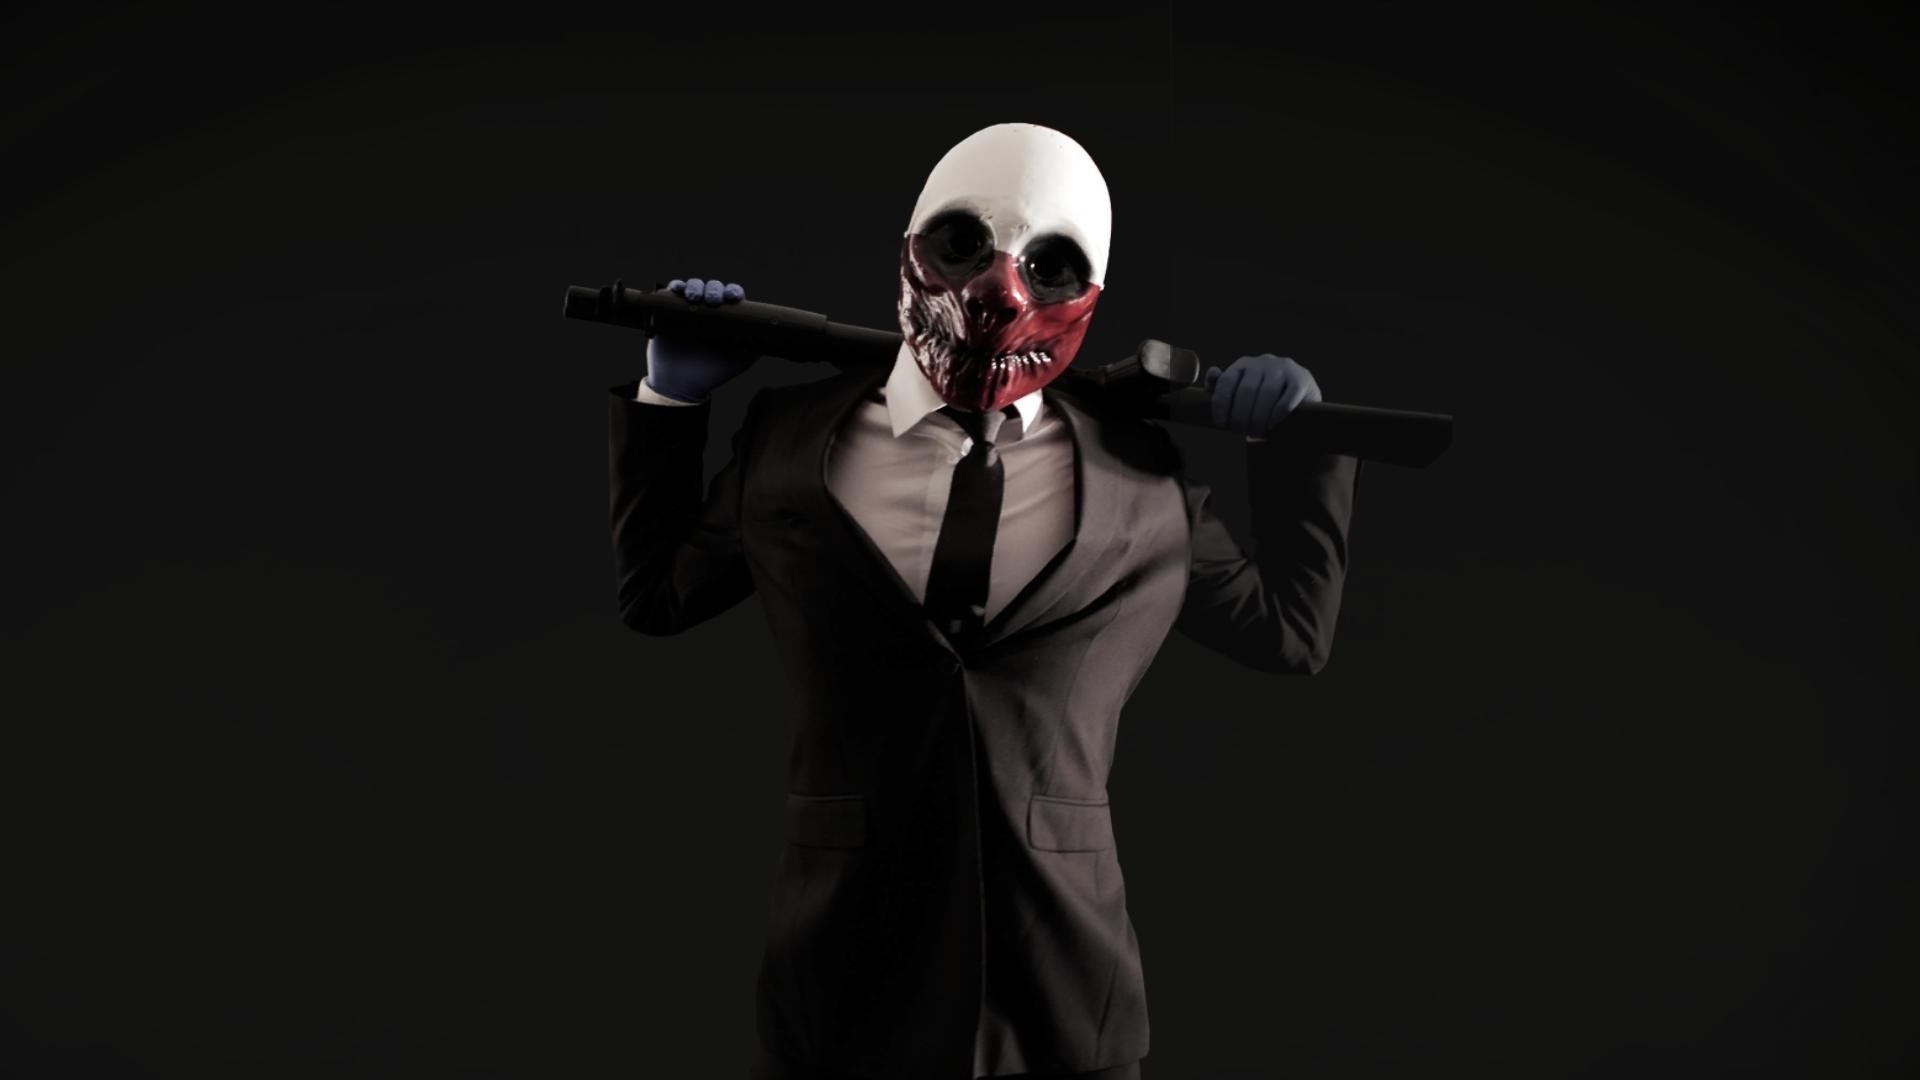 payday wallpaper 1280x1024